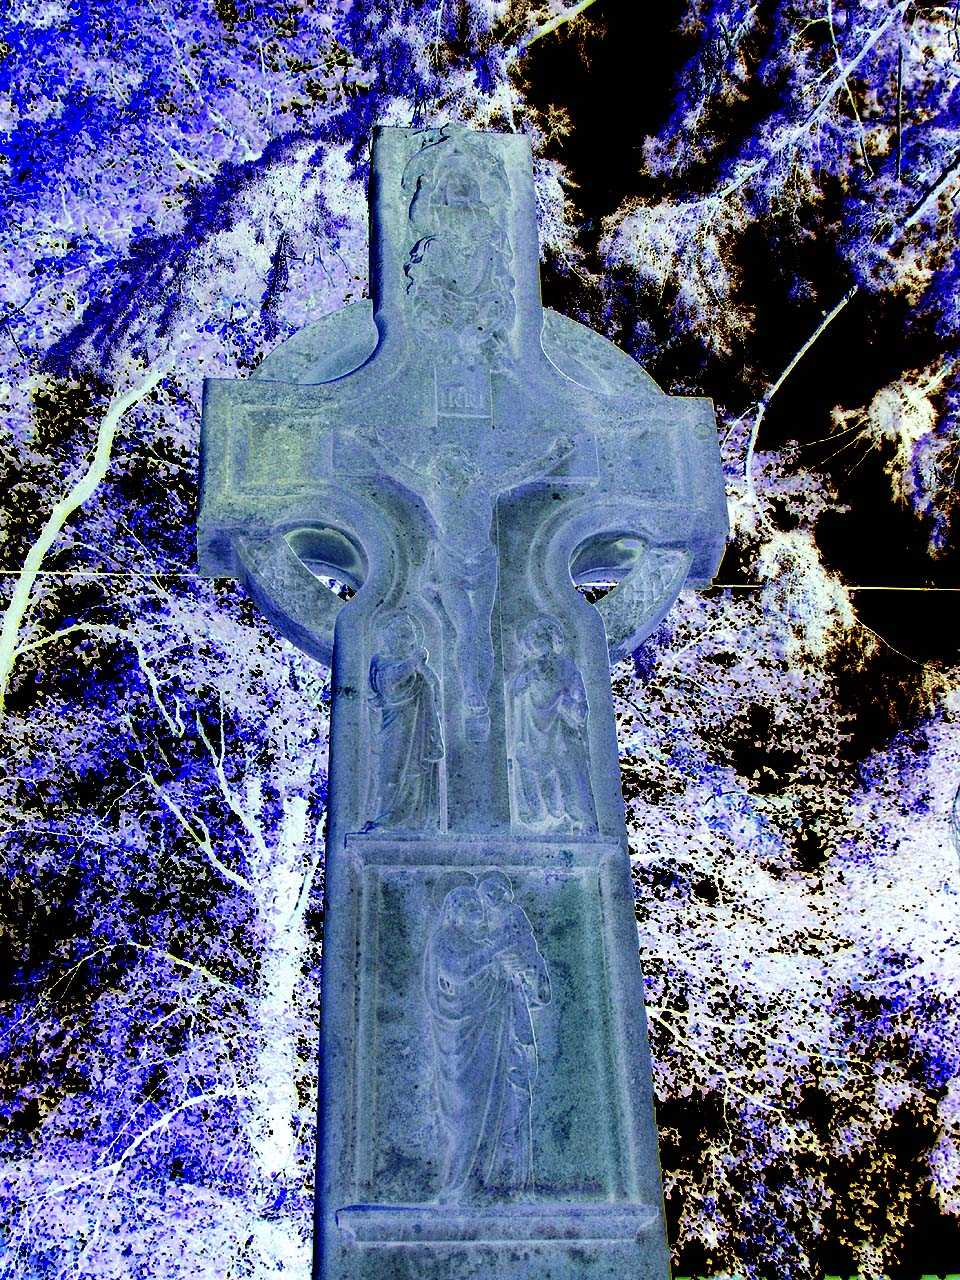 Llansadwrn,  Boer War Memorial in negative form to show detail